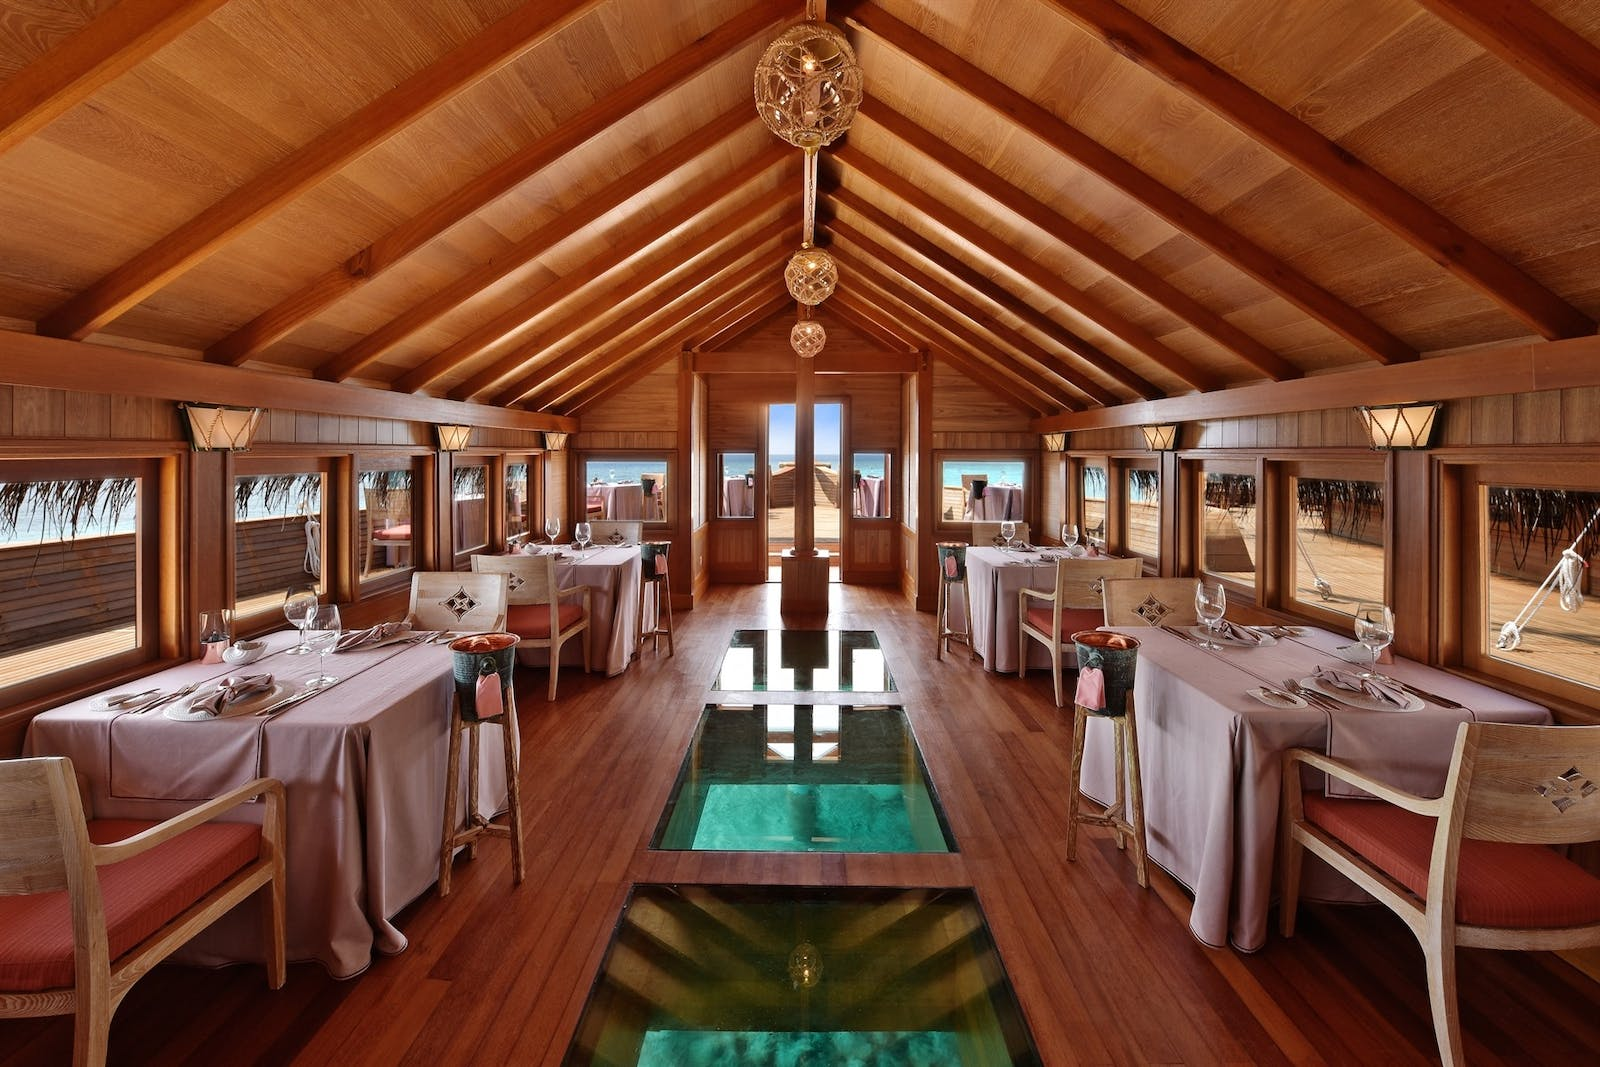 Indoor dining at Batheli Restairant, Milaidhoo, Maldives